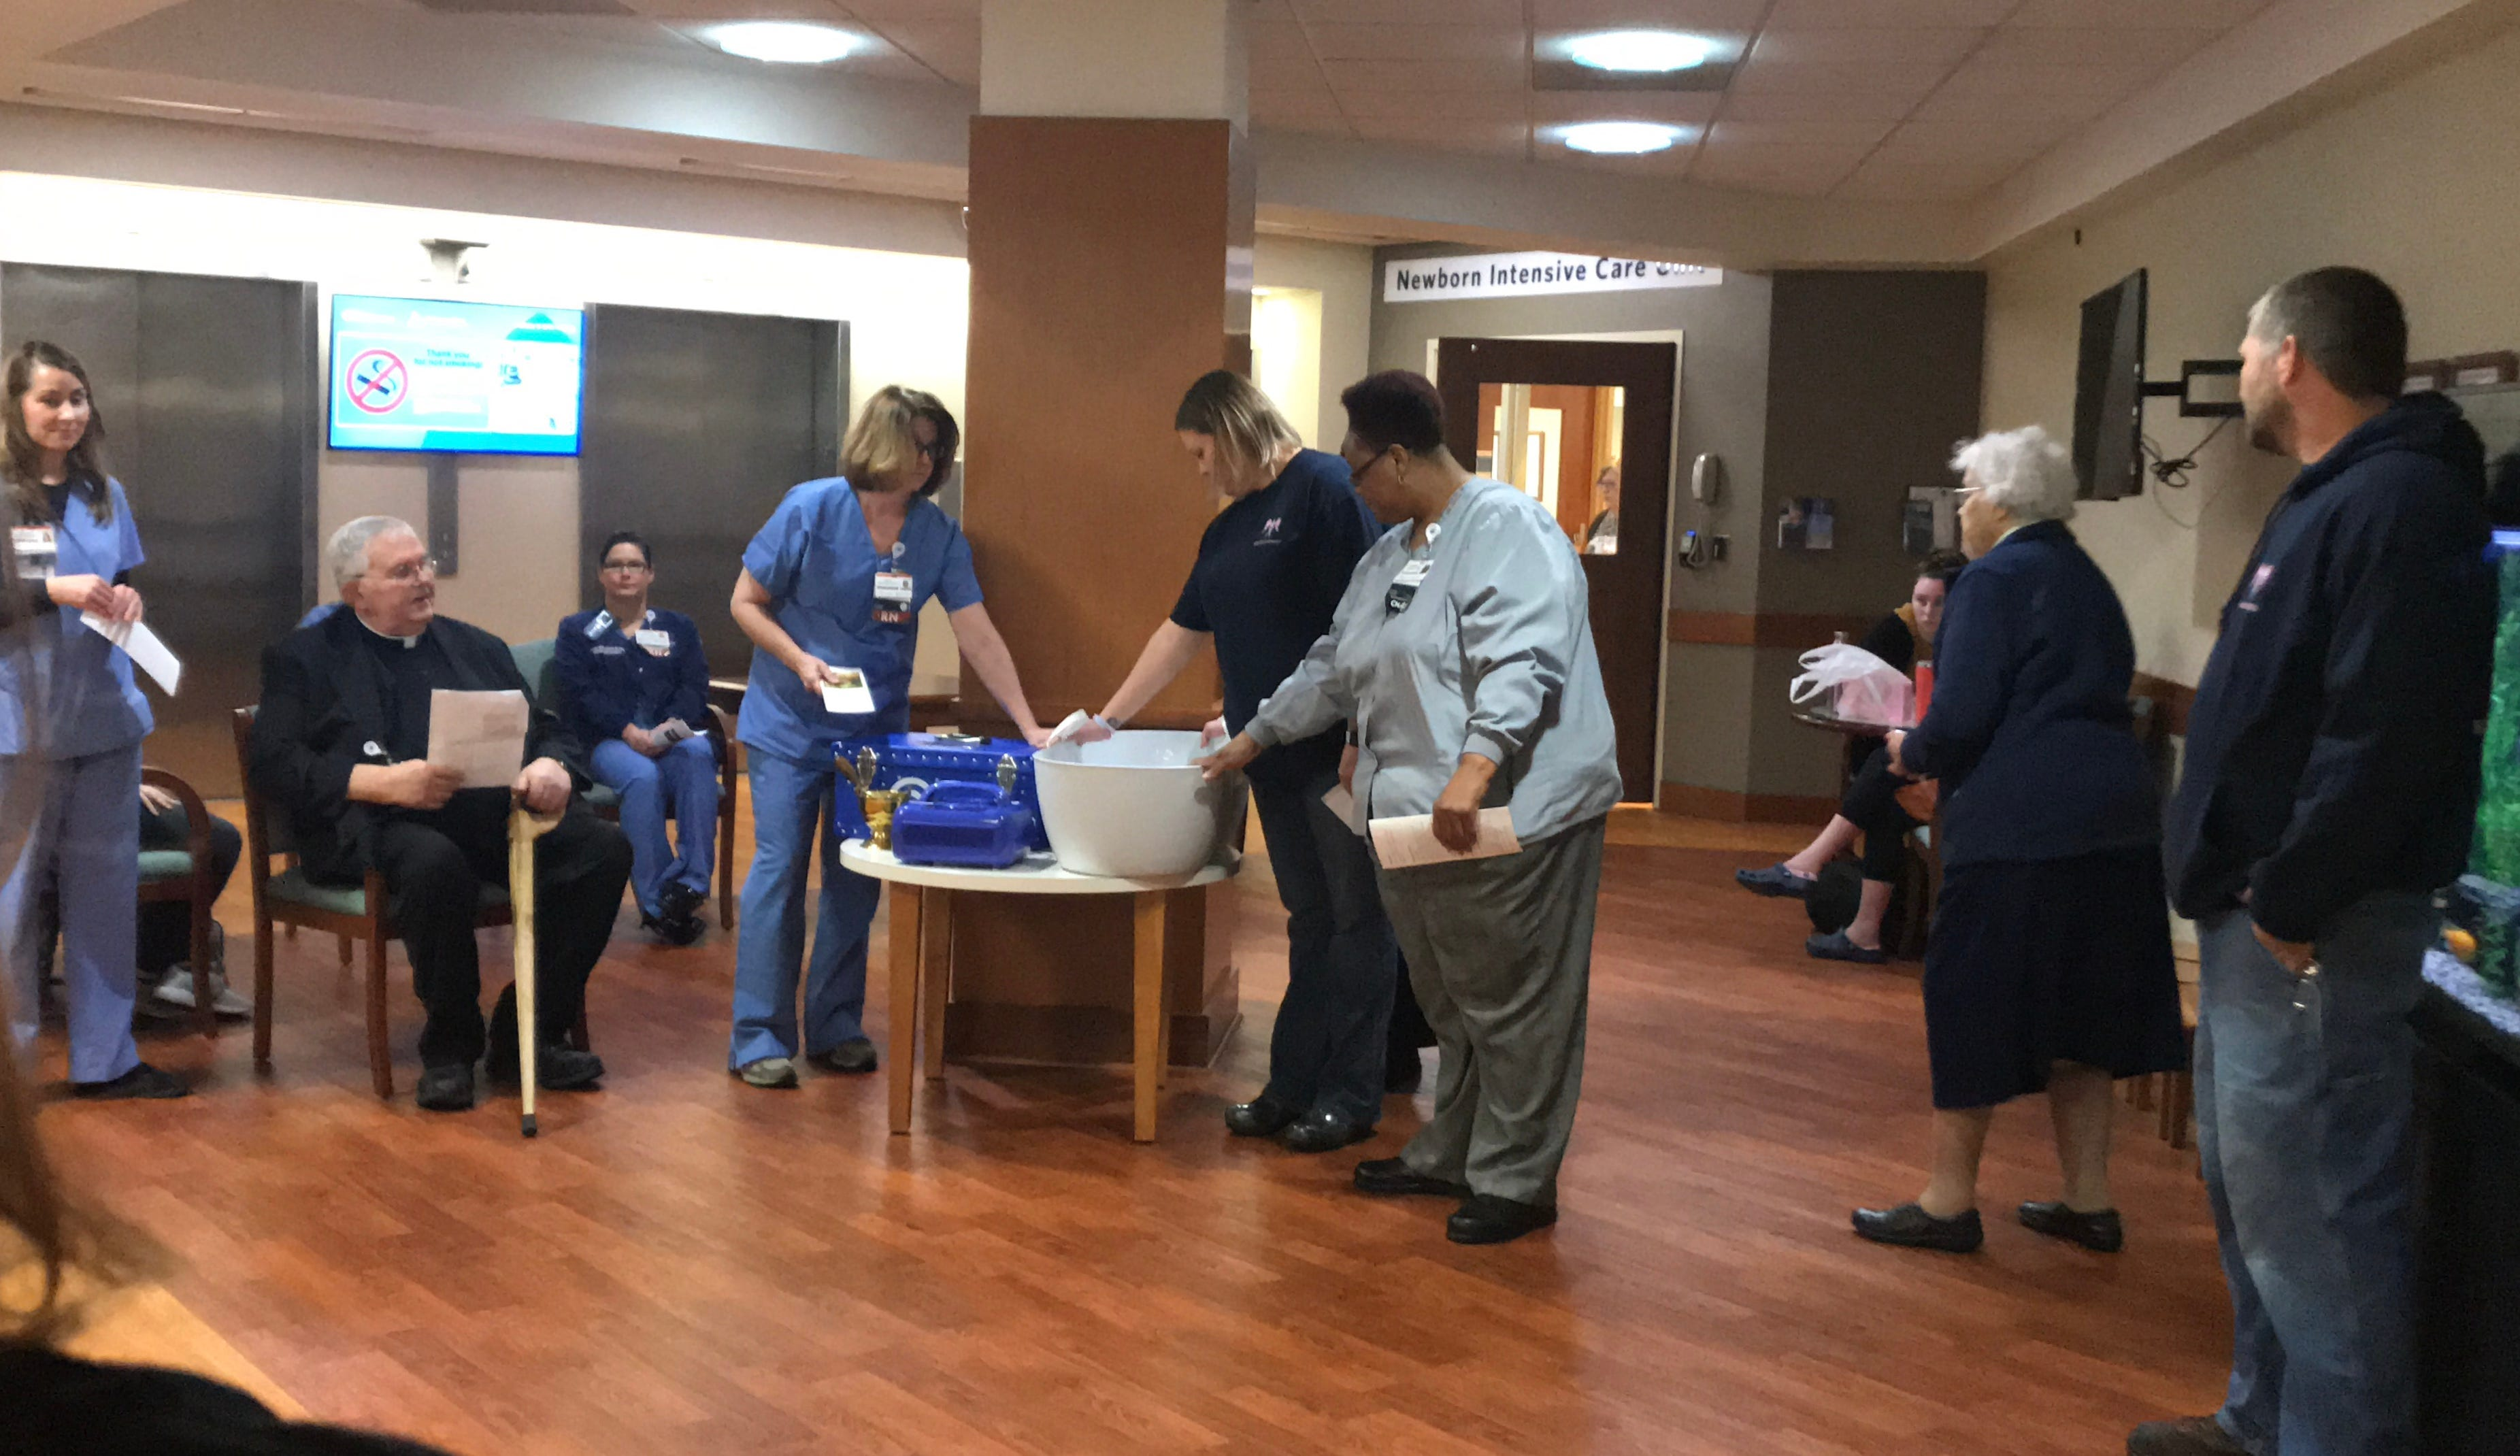 St. Vincent Hospital for Women & Children hosted a blessing and dedication ceremony for a recently donated CuddleCot.